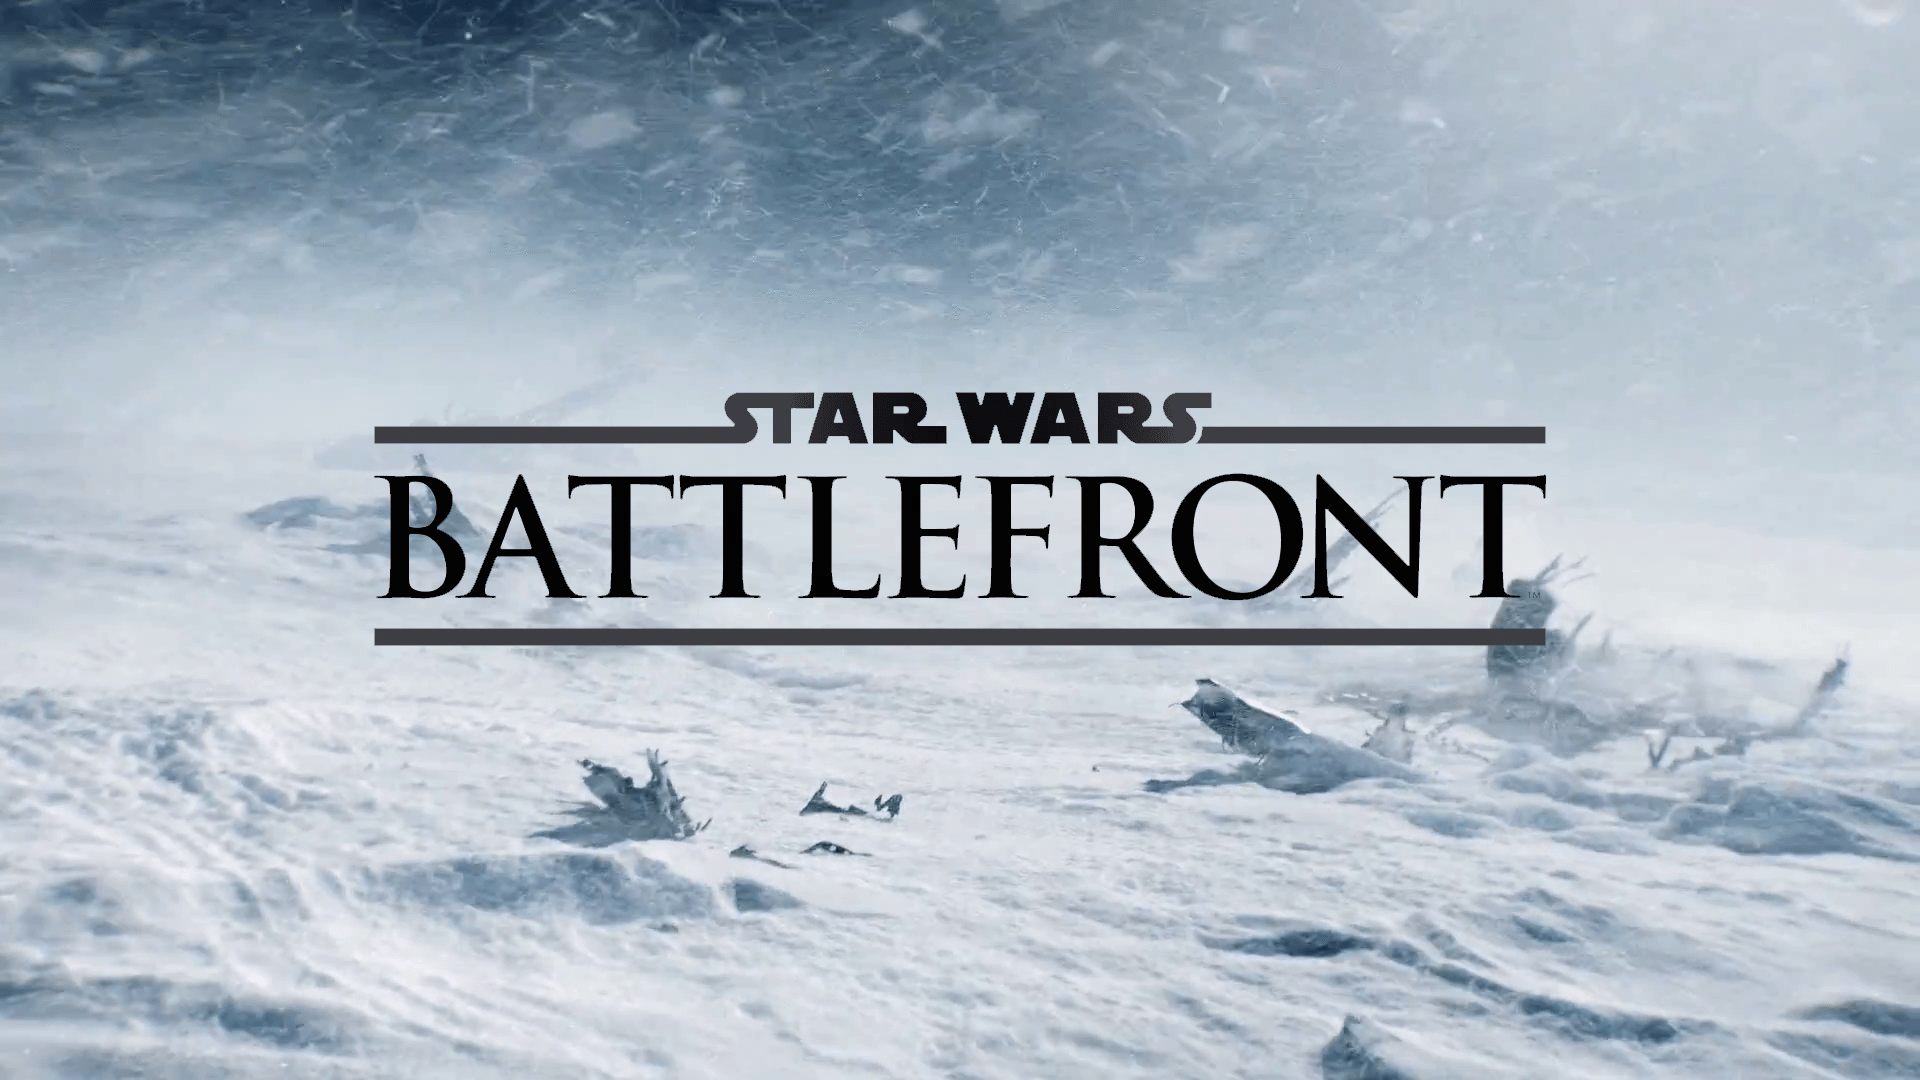 Star Wars: Battlefront – Flop or Top?